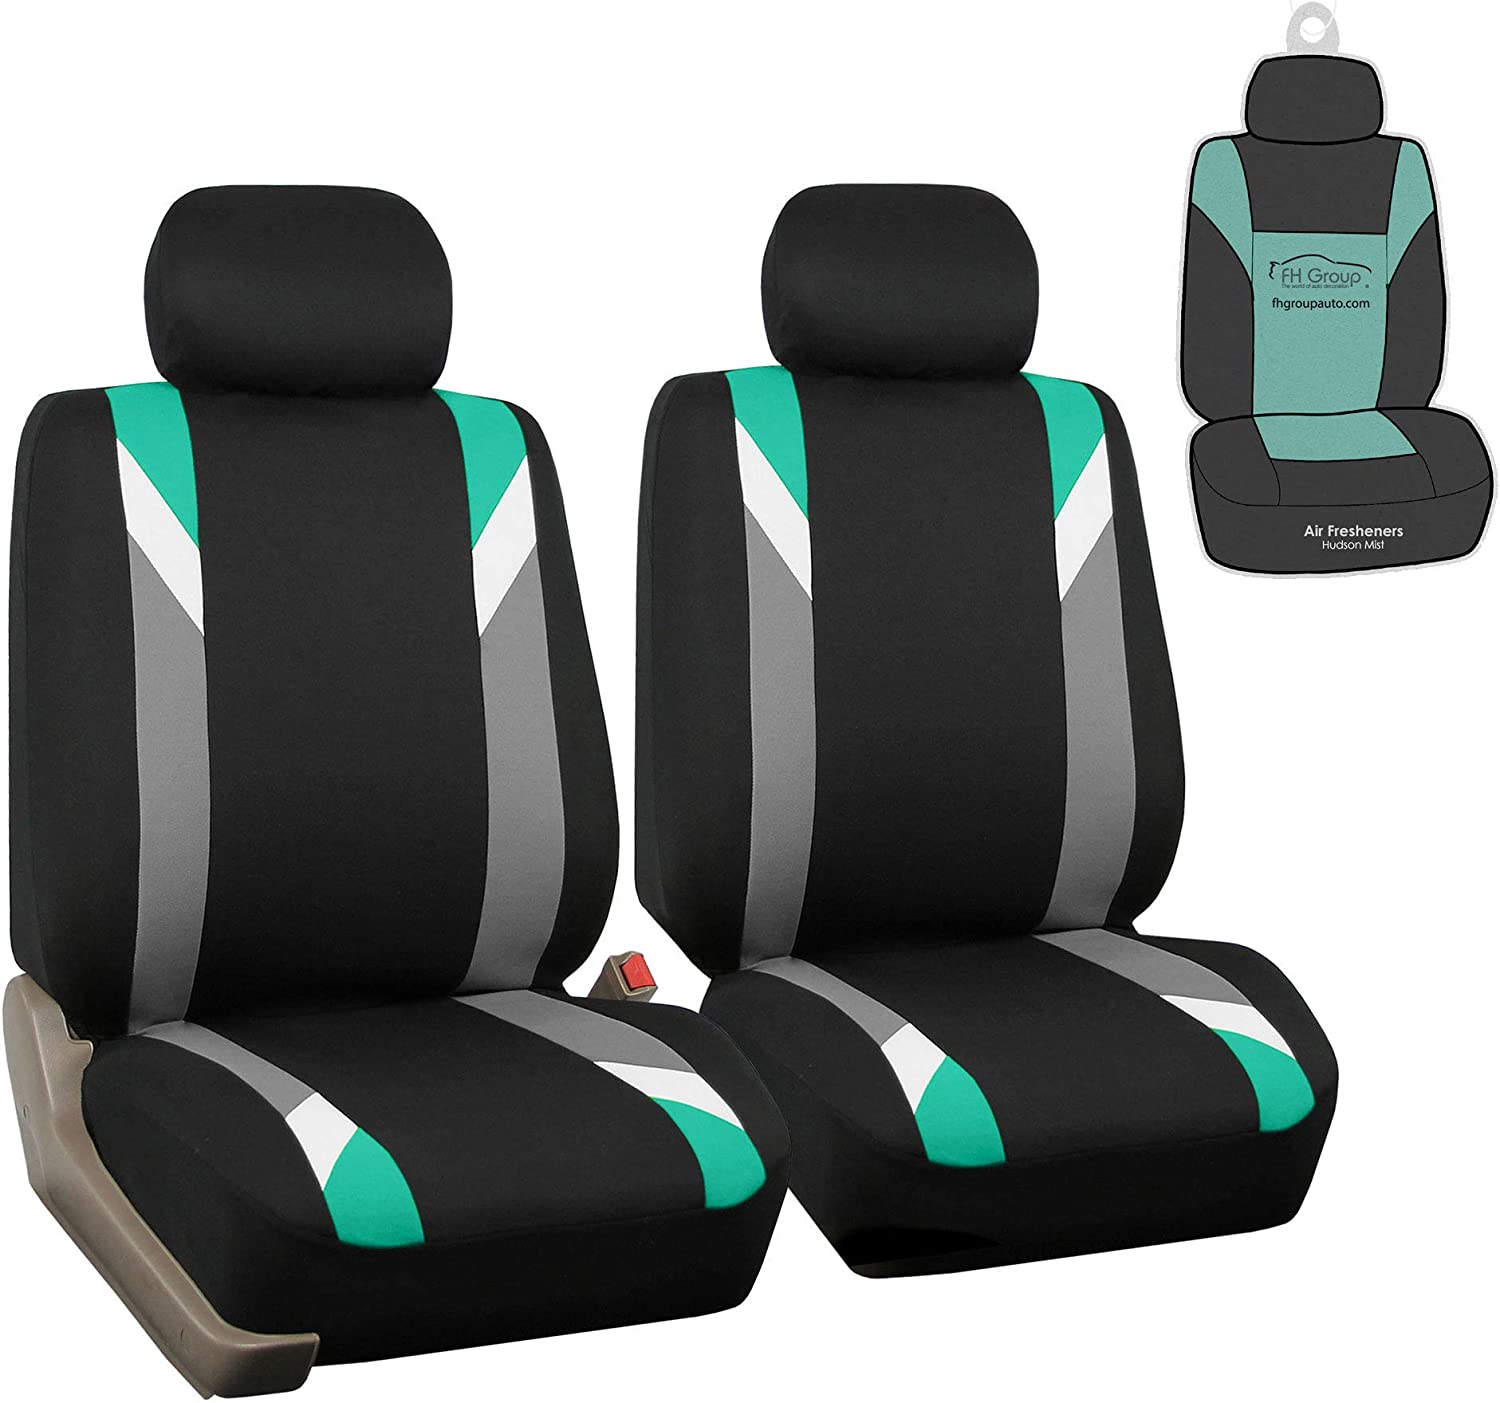 FH Group FB033102 Premium Modernistic Pair Set Seat Covers Mint/Black with Gift - Fit Most Car, Truck, SUV, or Van